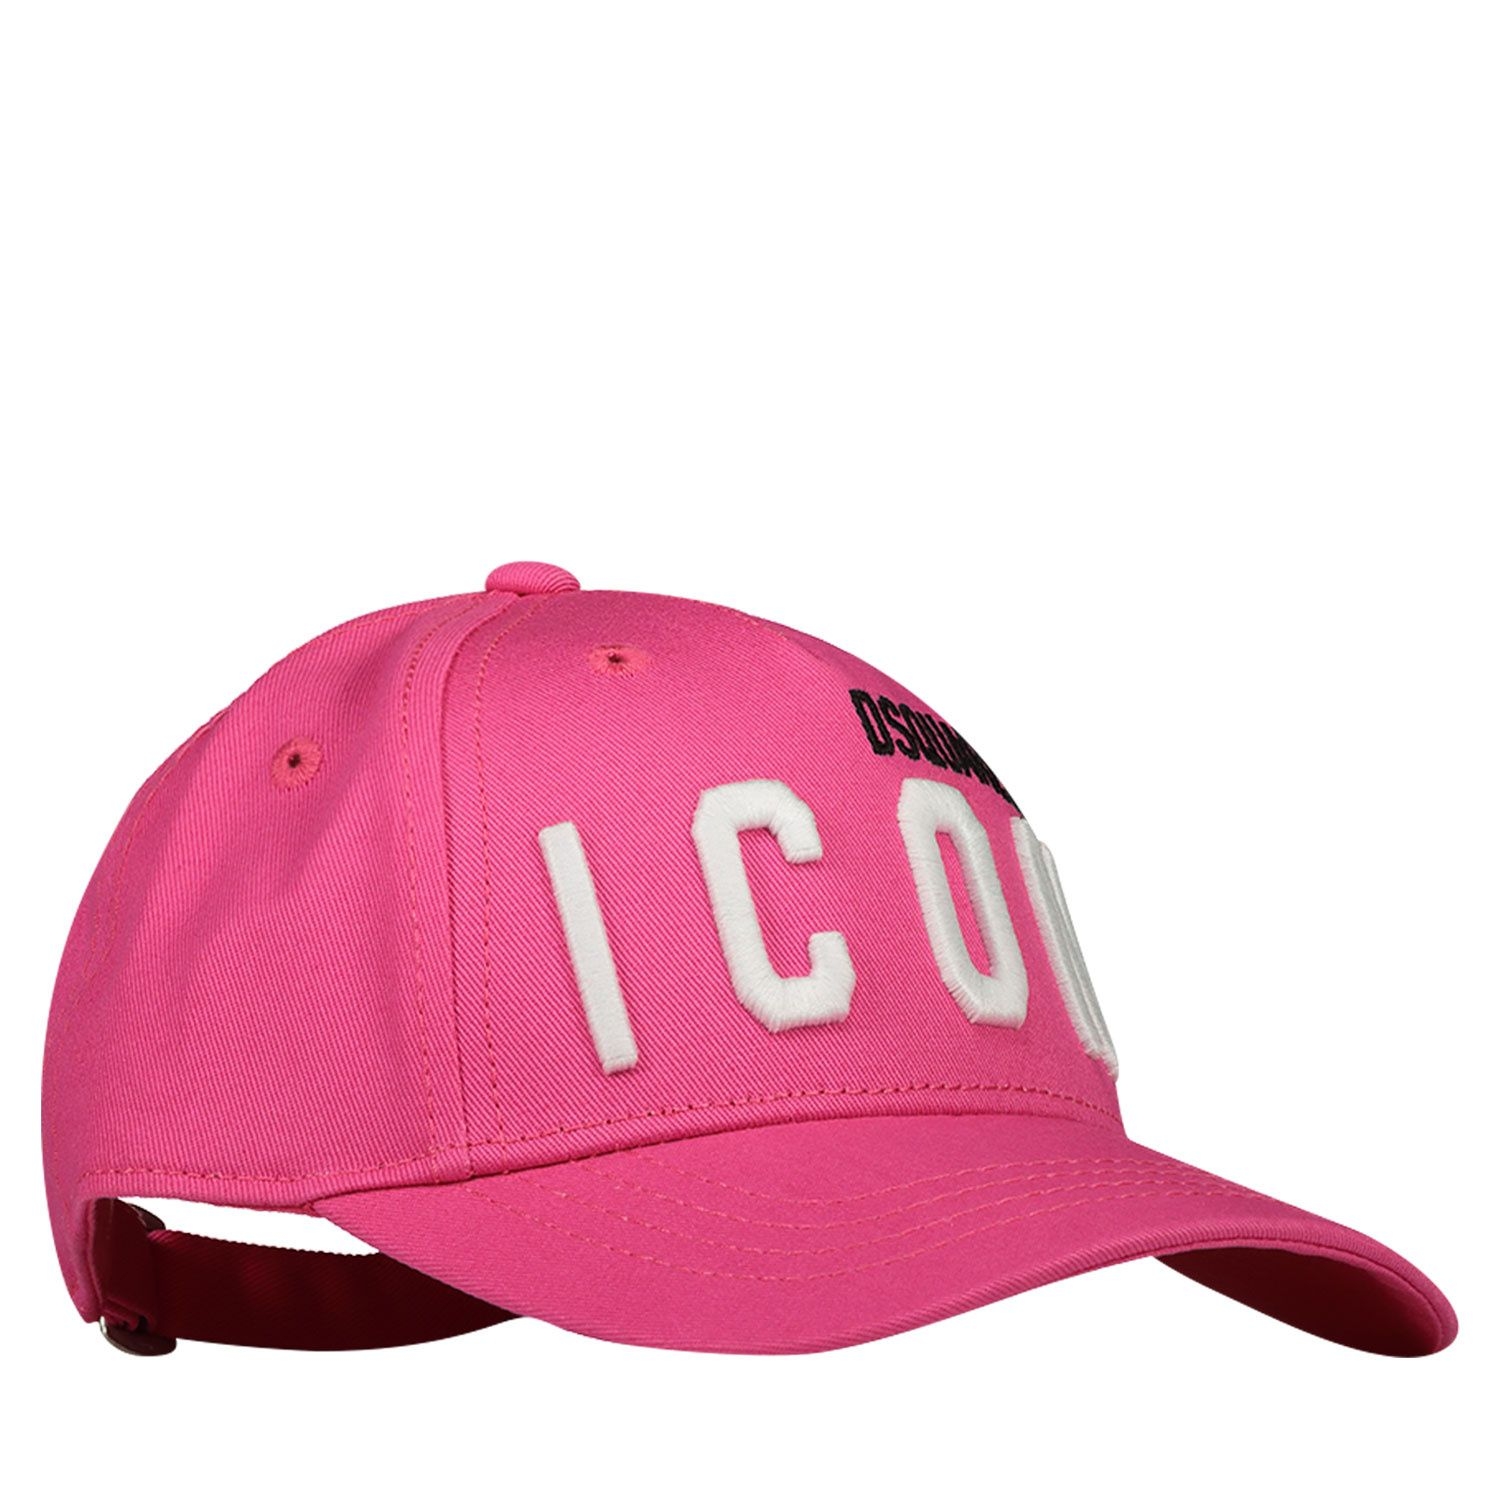 Picture of Dsquared2 DQ0270 baby hat fuchsia